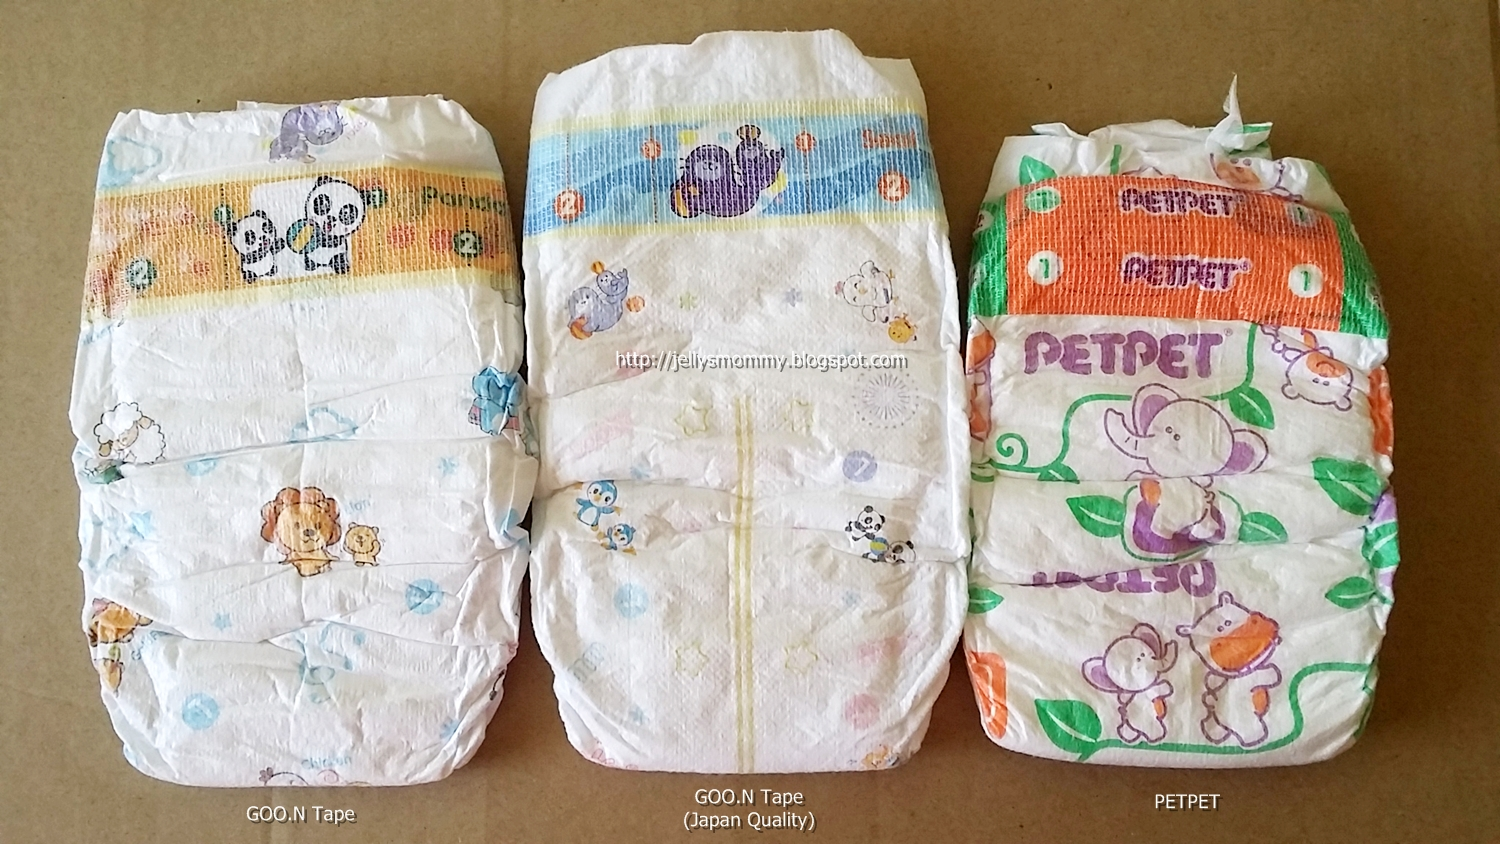 A Little Bit Of Everything Disposable Diaper Review Goon Mamypoko Tape Small Packet N Japan Quality And Petpet